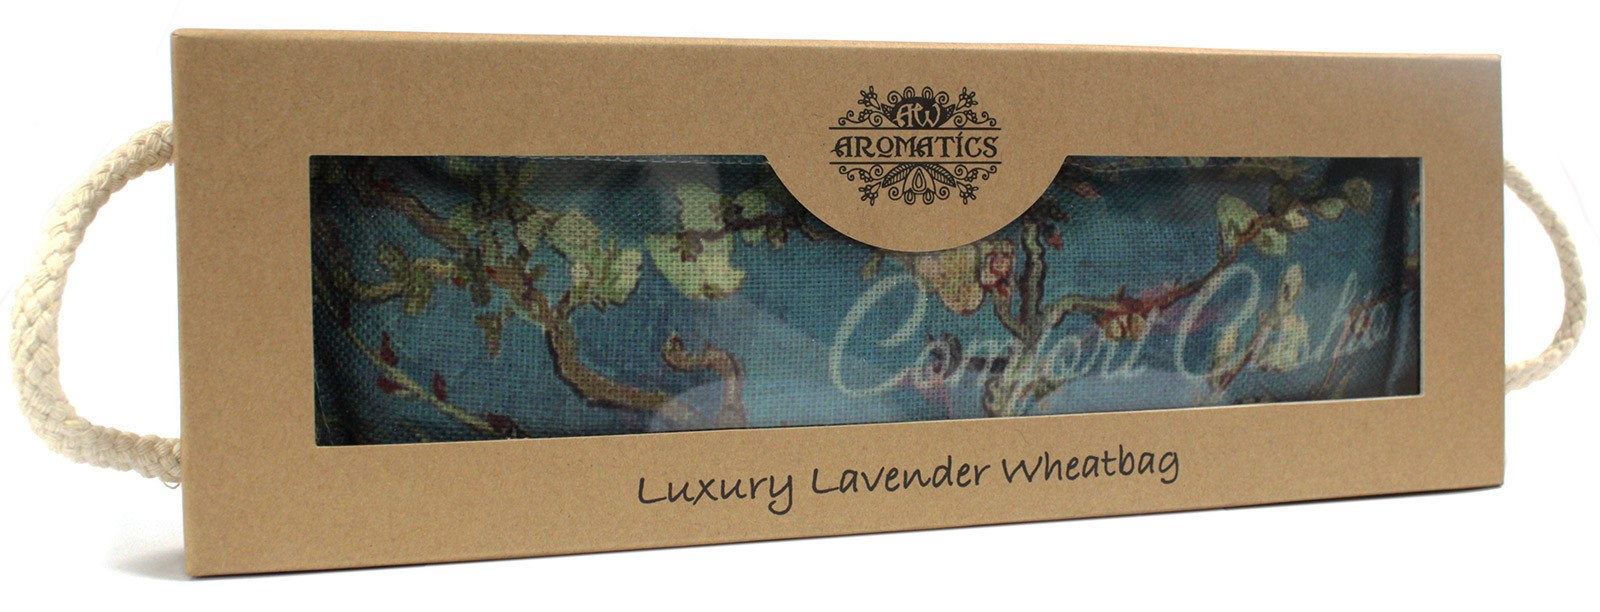 Luxury Lavender Wheat Bag in Gift Box Blossom